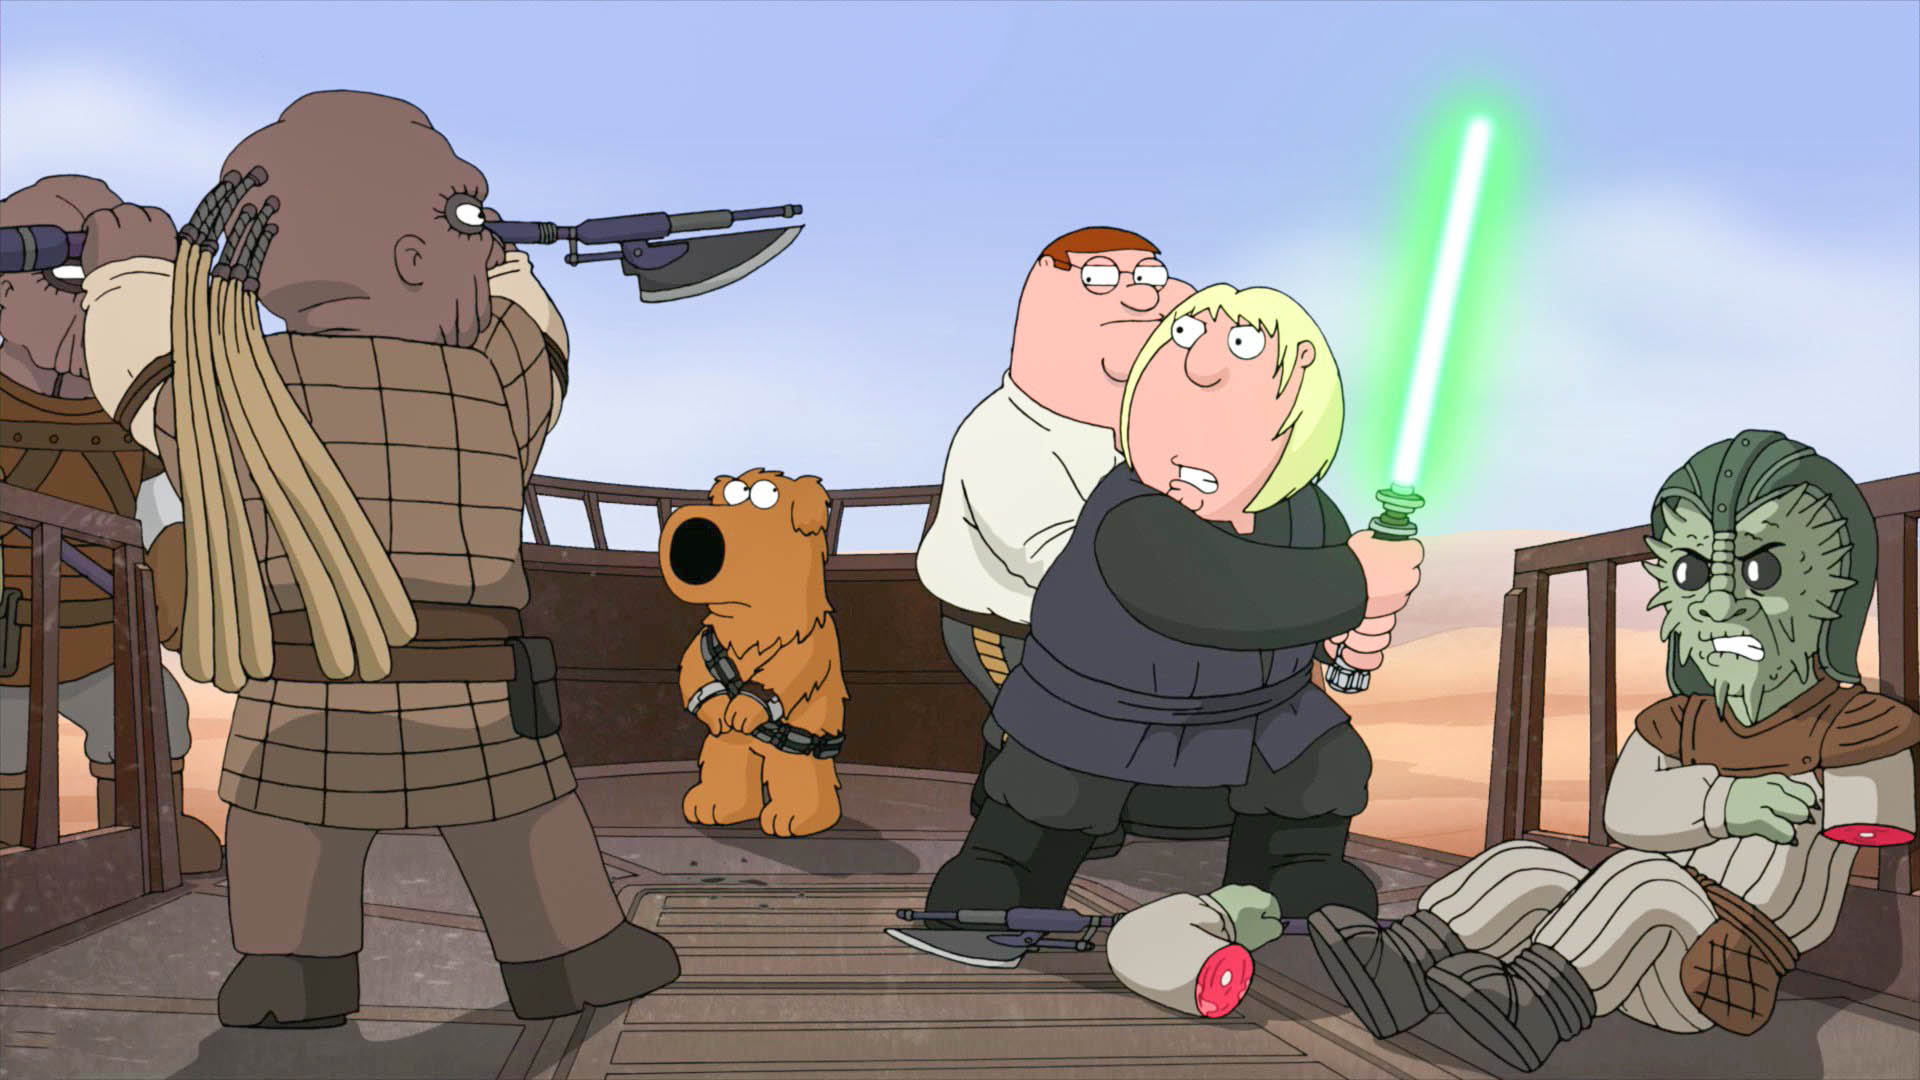 Girly Iphone Home Screen Wallpaper Family Guy Hd Wallpapers 2015 High Definition All Hd